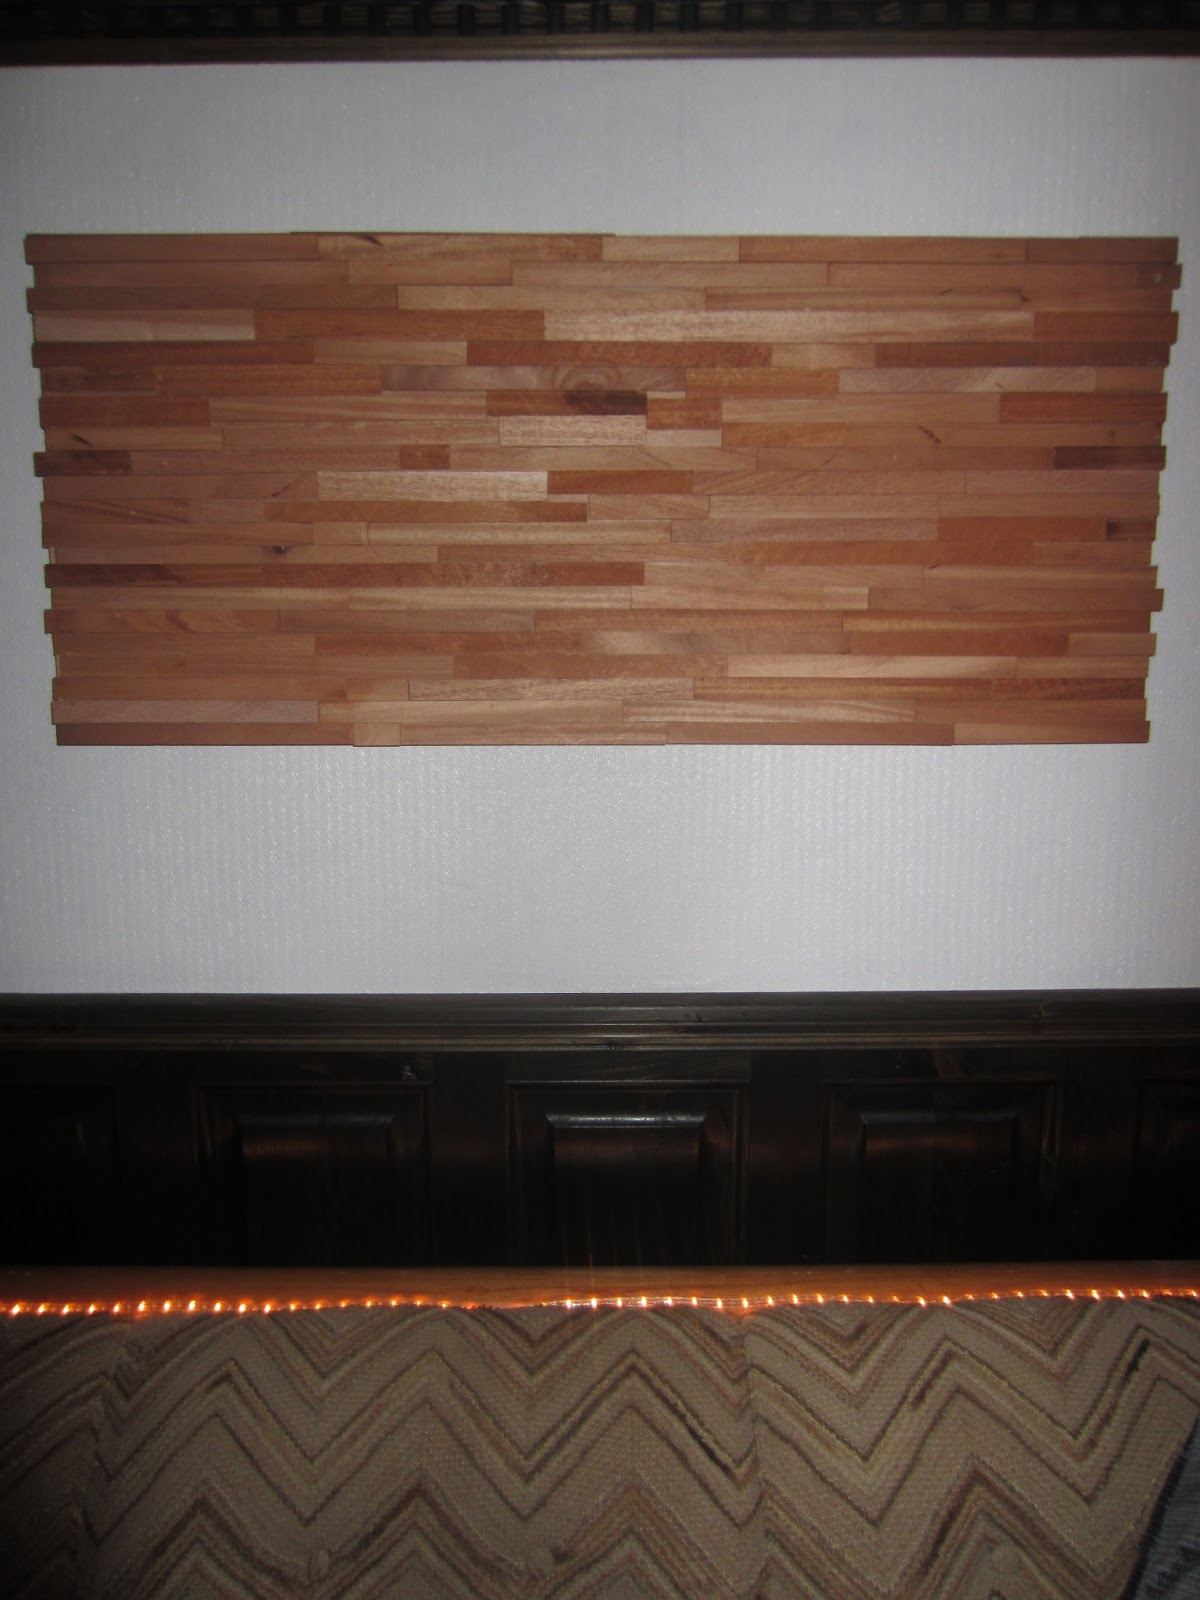 Wooden Wall Covering : Relaxshacks wood shims as a wall covering art